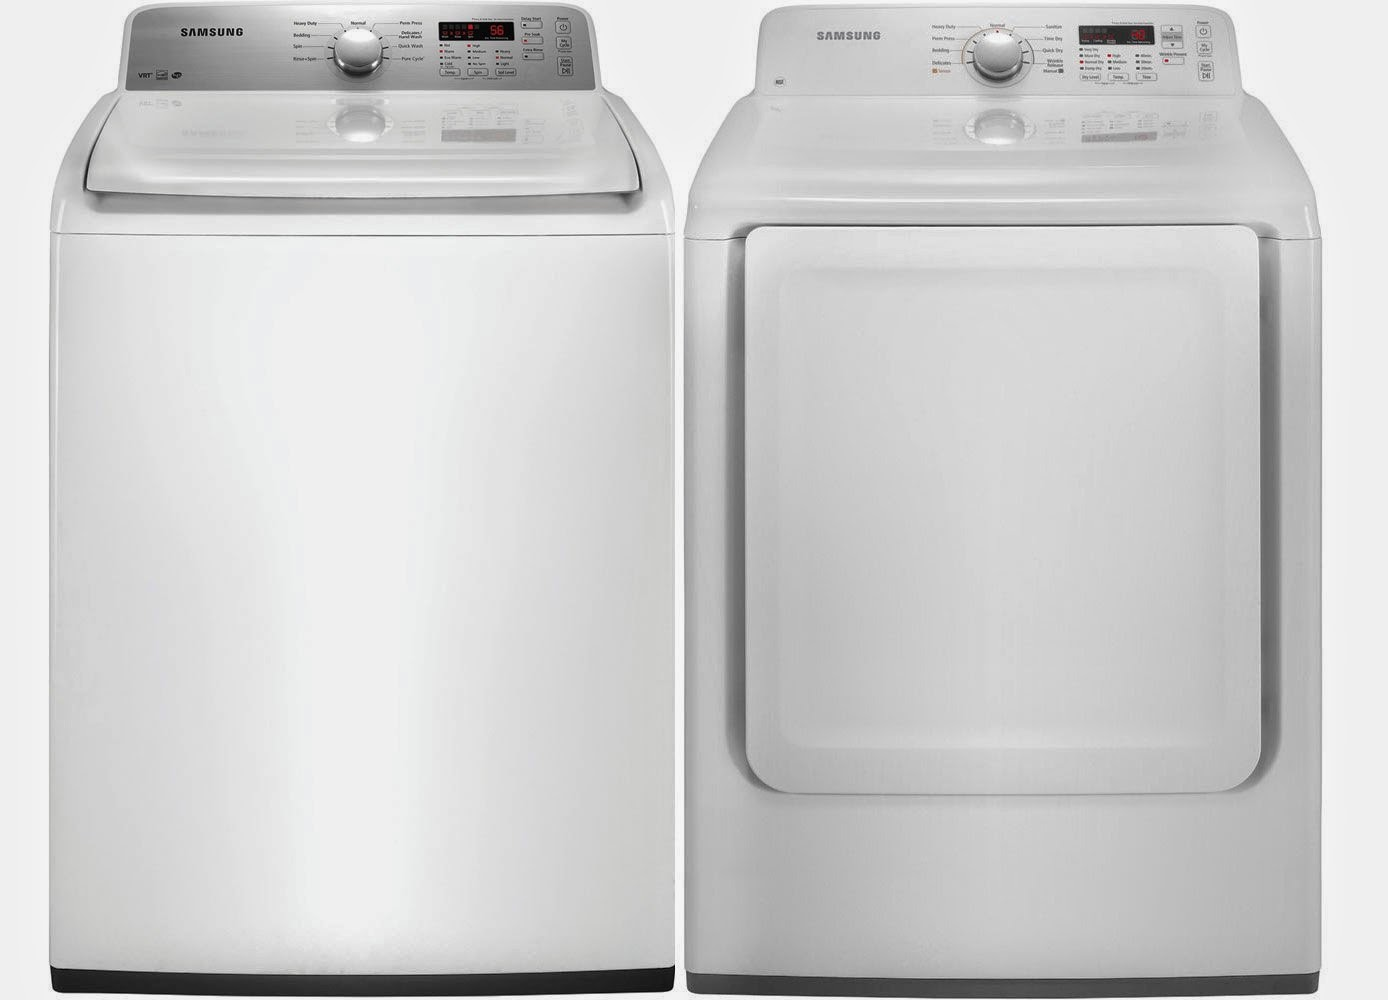 Samsung Washer And Dryer Reviews White Samsung Washer And